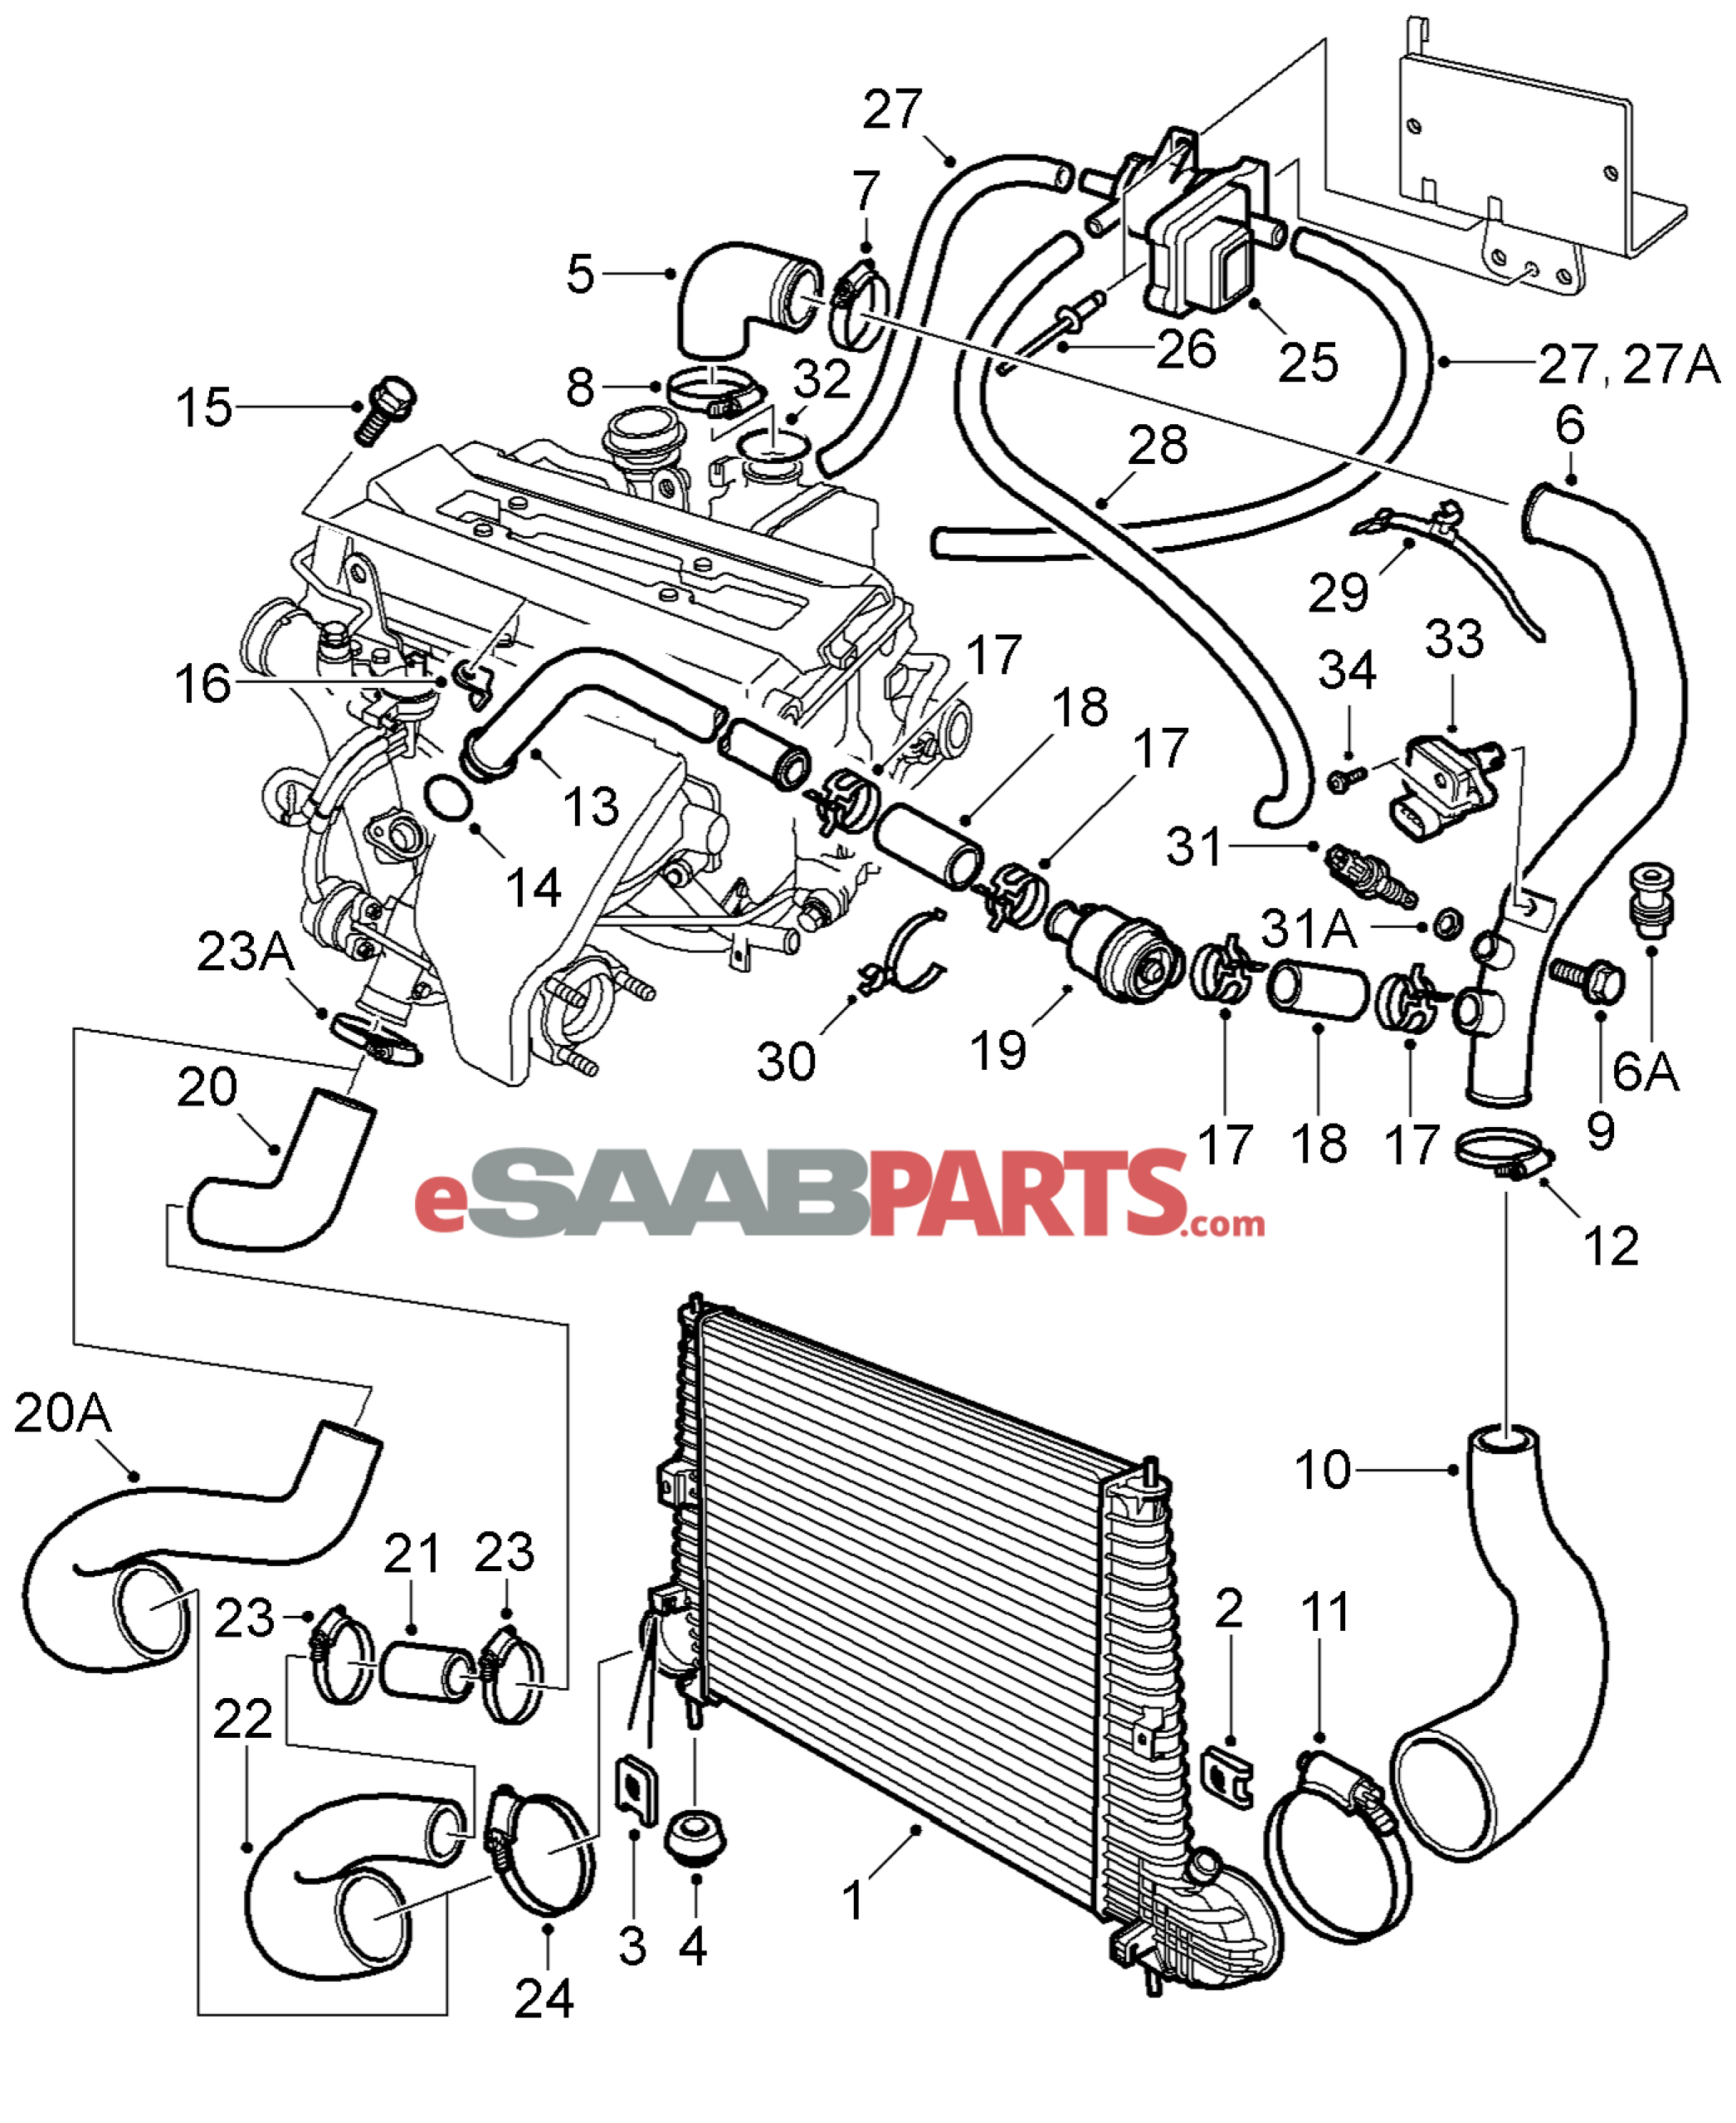 Showthread together with Vacuum Diagram Toyota Tercel 2e 13cc Carburado likewise 16vhoses moreover 2004 Saab 9 3 Speaker Wire Diagram in addition Saab 20900 20Wiring 20diagram 20 early 20models. on saab 9 5 wiring diagram